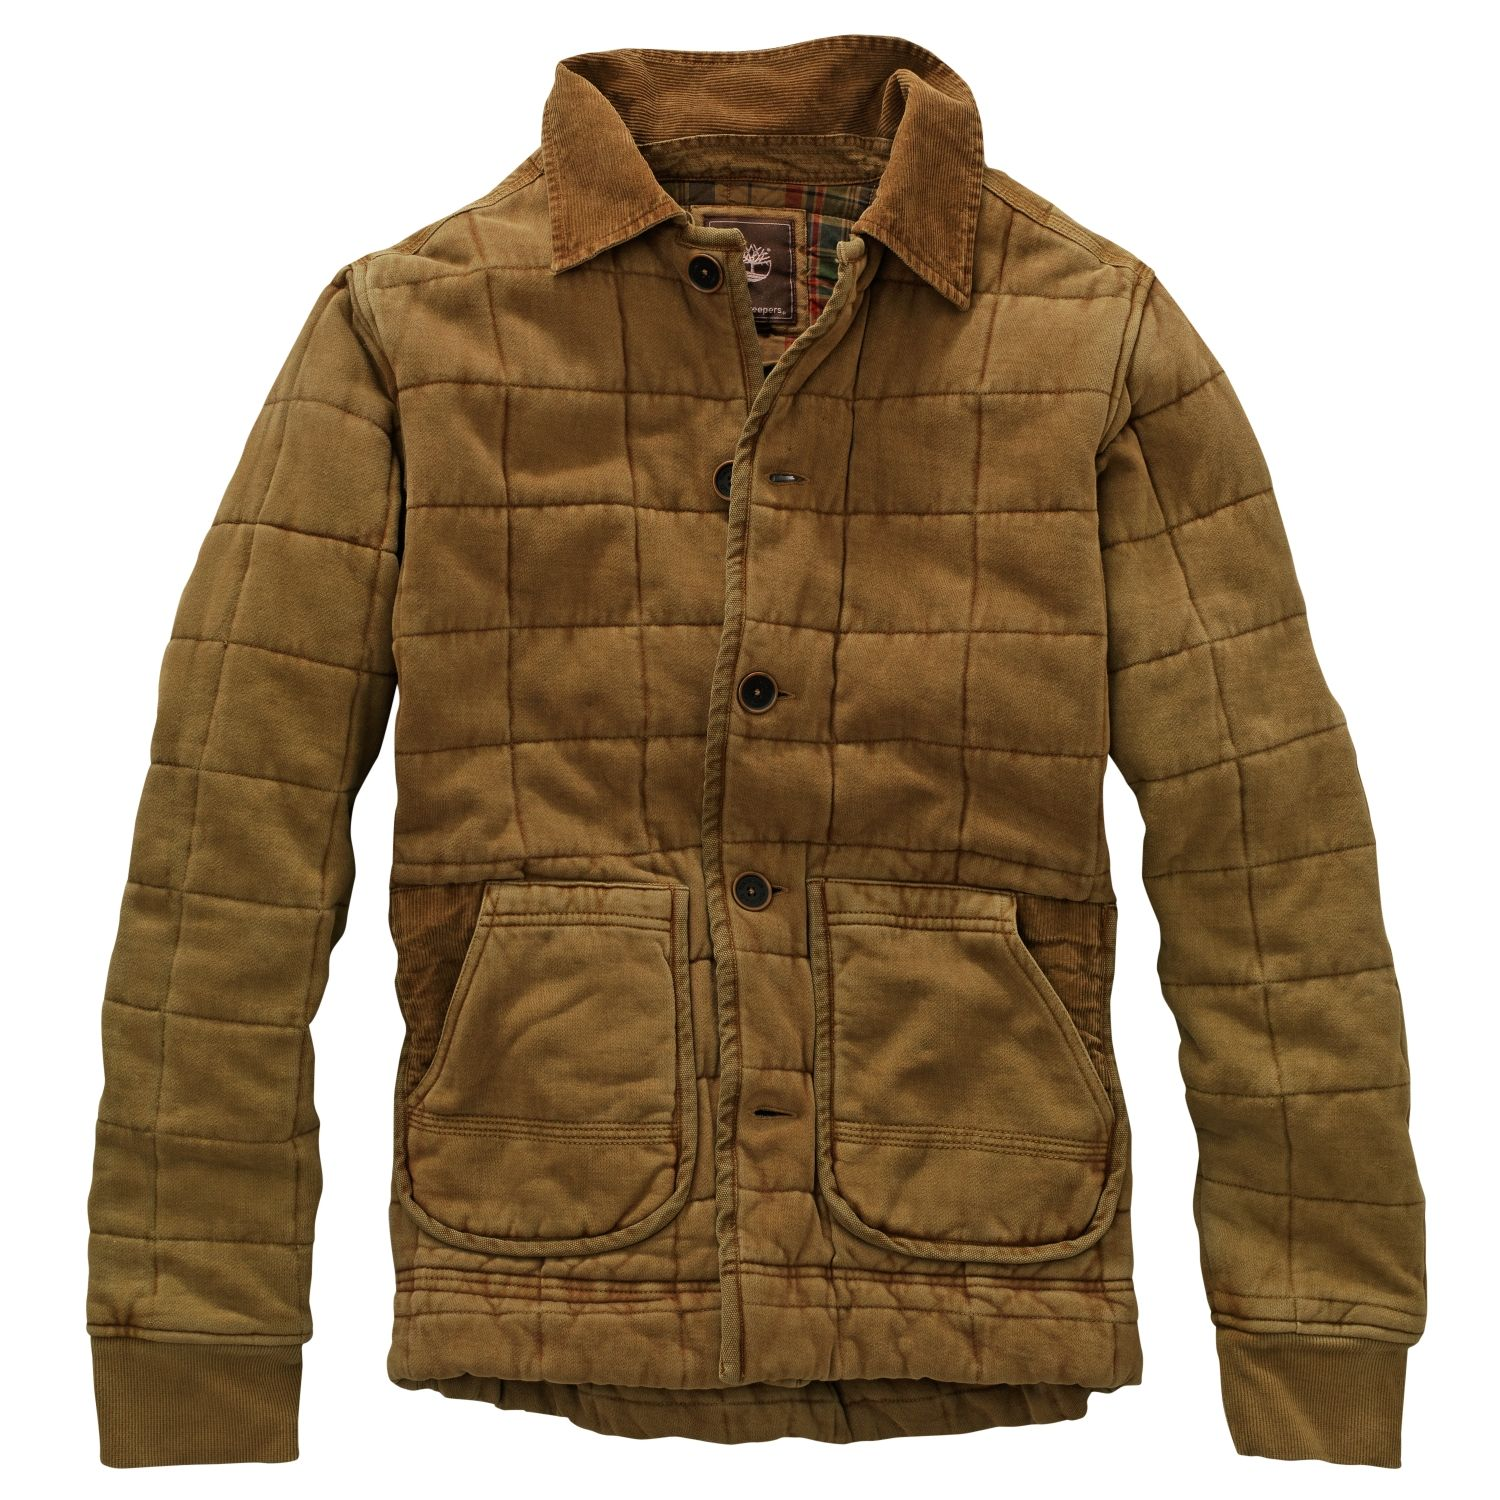 Timberland - Men's Earthkeepers® Quilted Sweatshirt Jacket ... : quilted sweatshirt jacket - Adamdwight.com